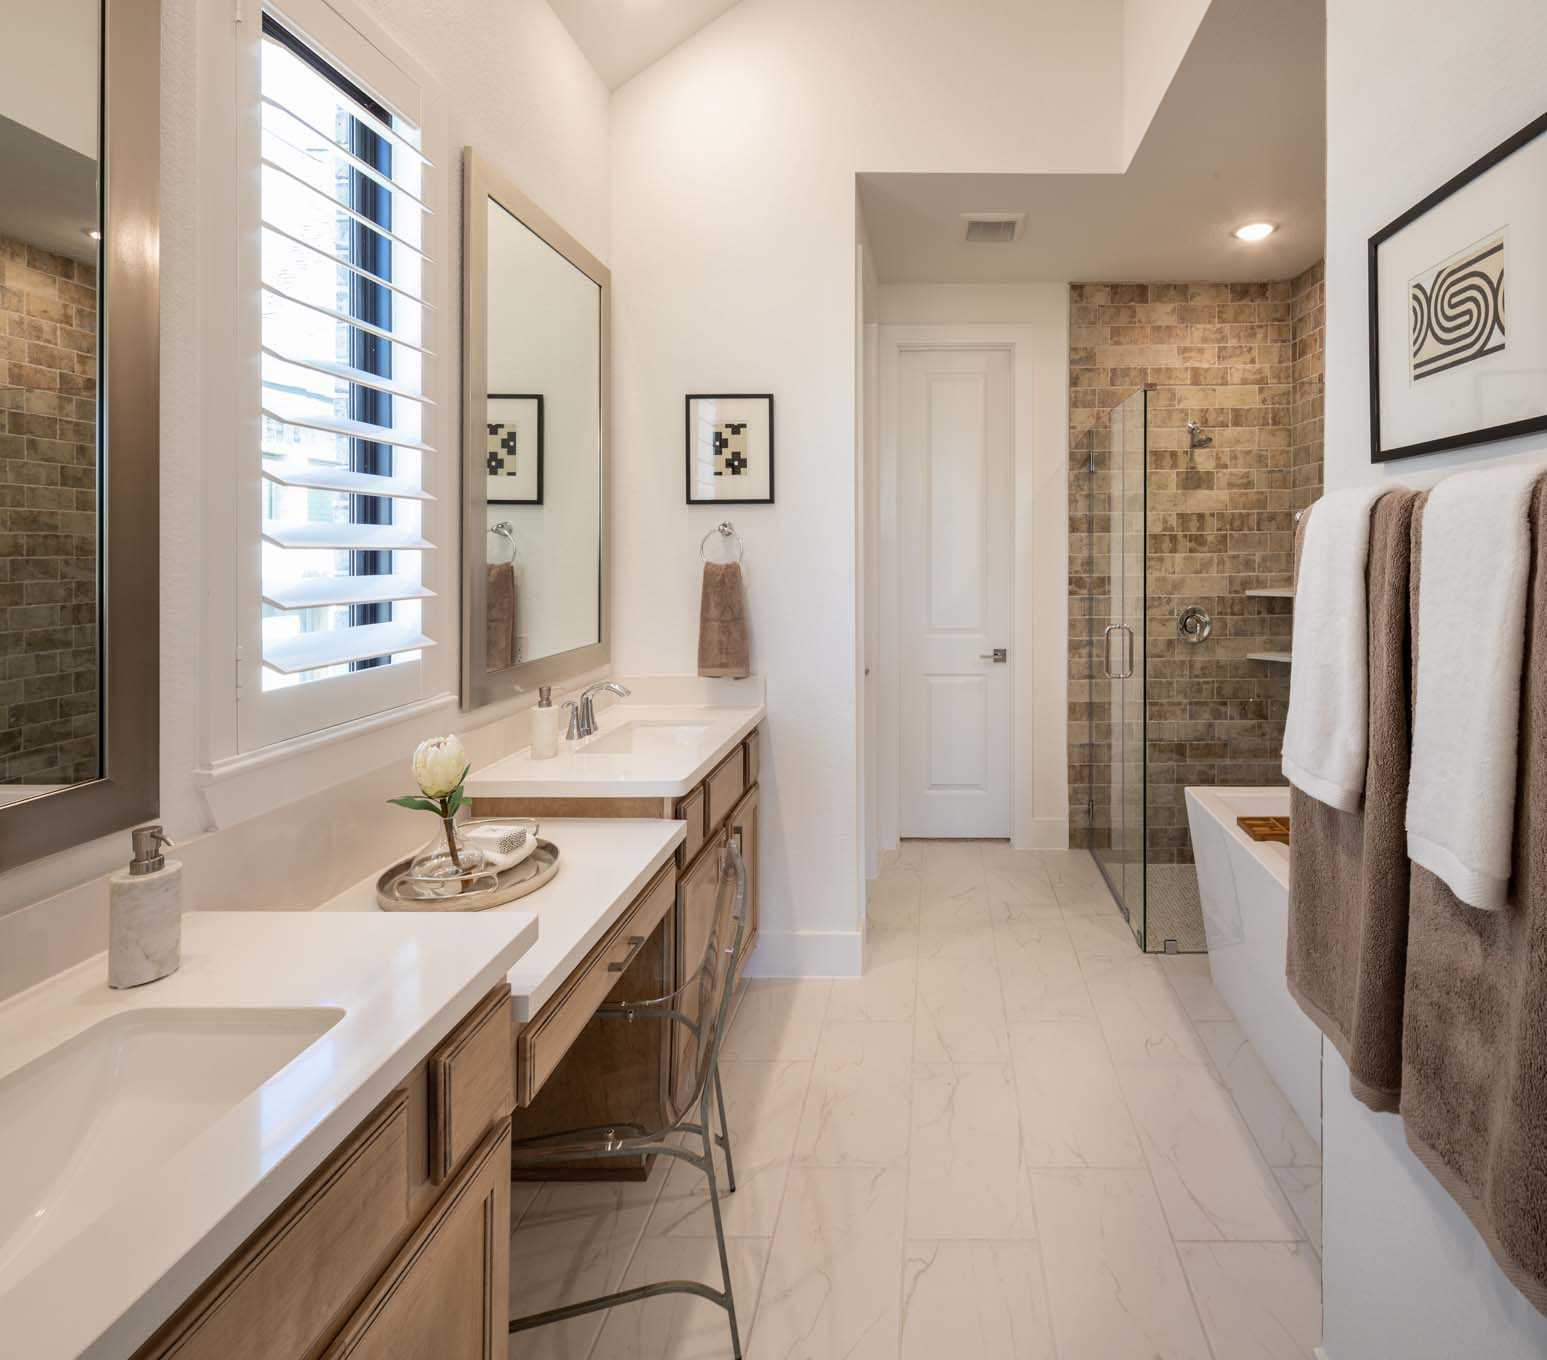 Bathroom featured in the Plan Newport By Highland Homes in Houston, TX